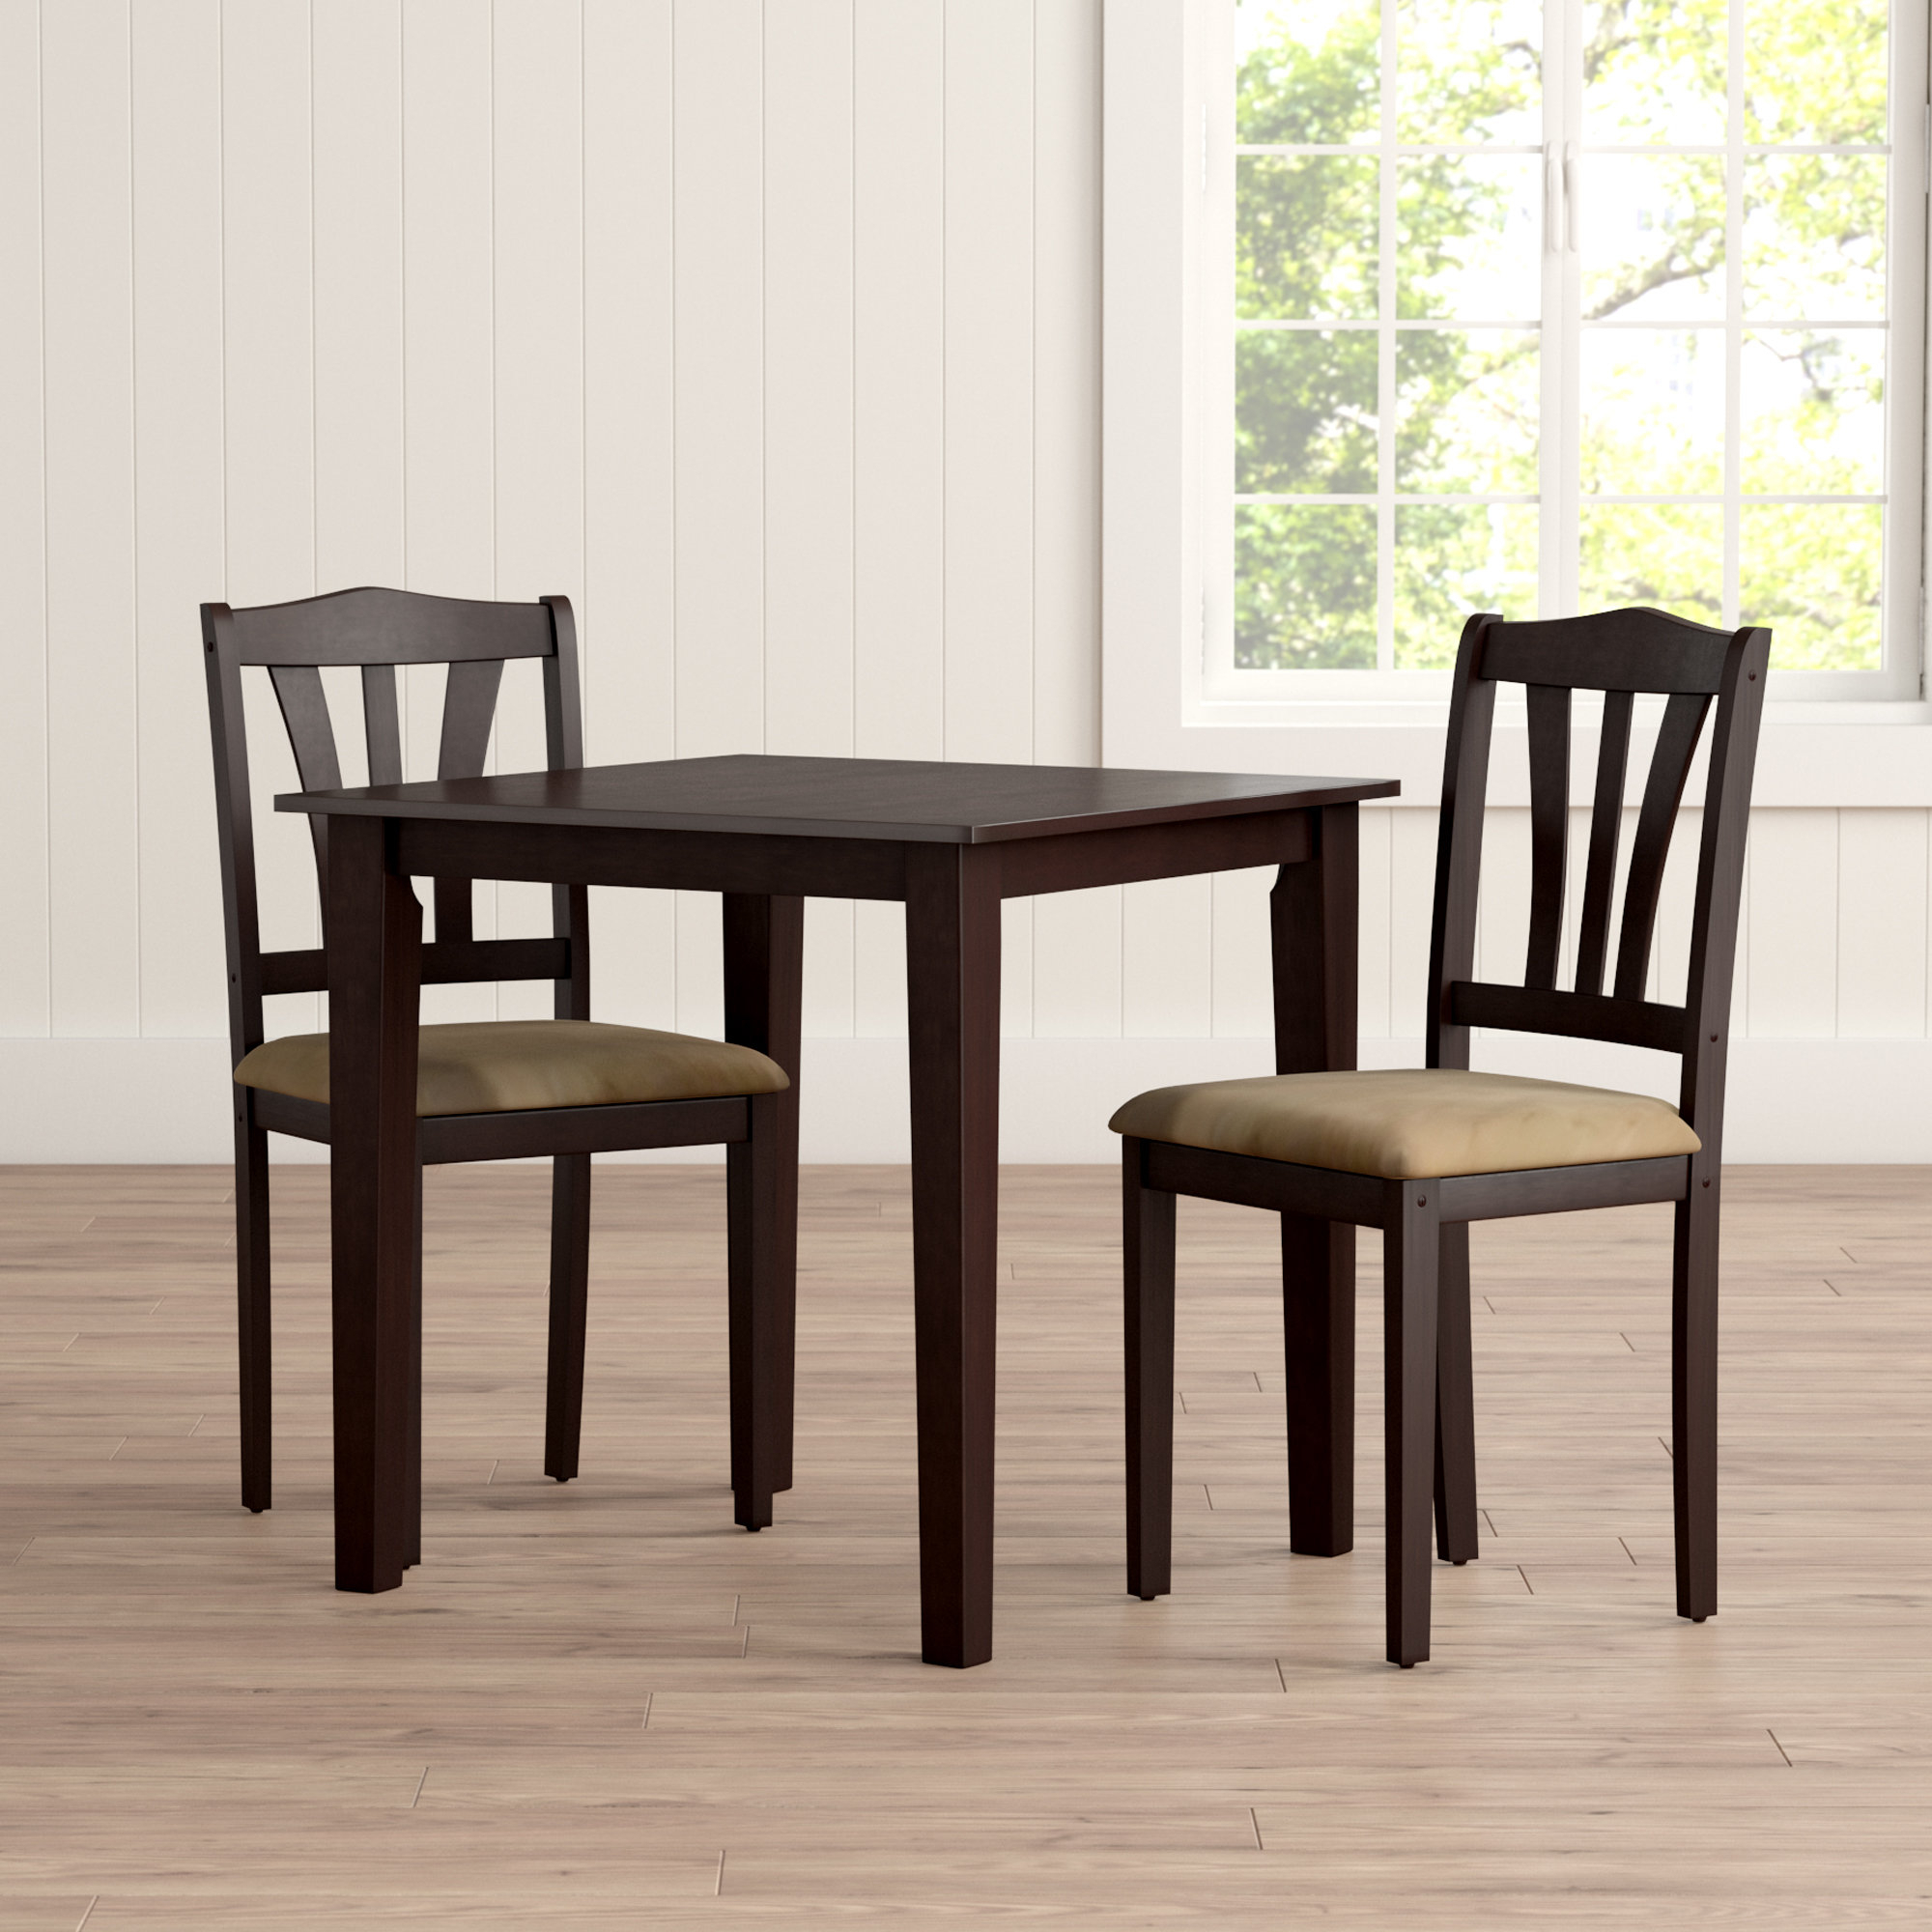 Dinah 3 Piece Dining Set In Most Popular Baillie 3 Piece Dining Sets (Image 7 of 20)